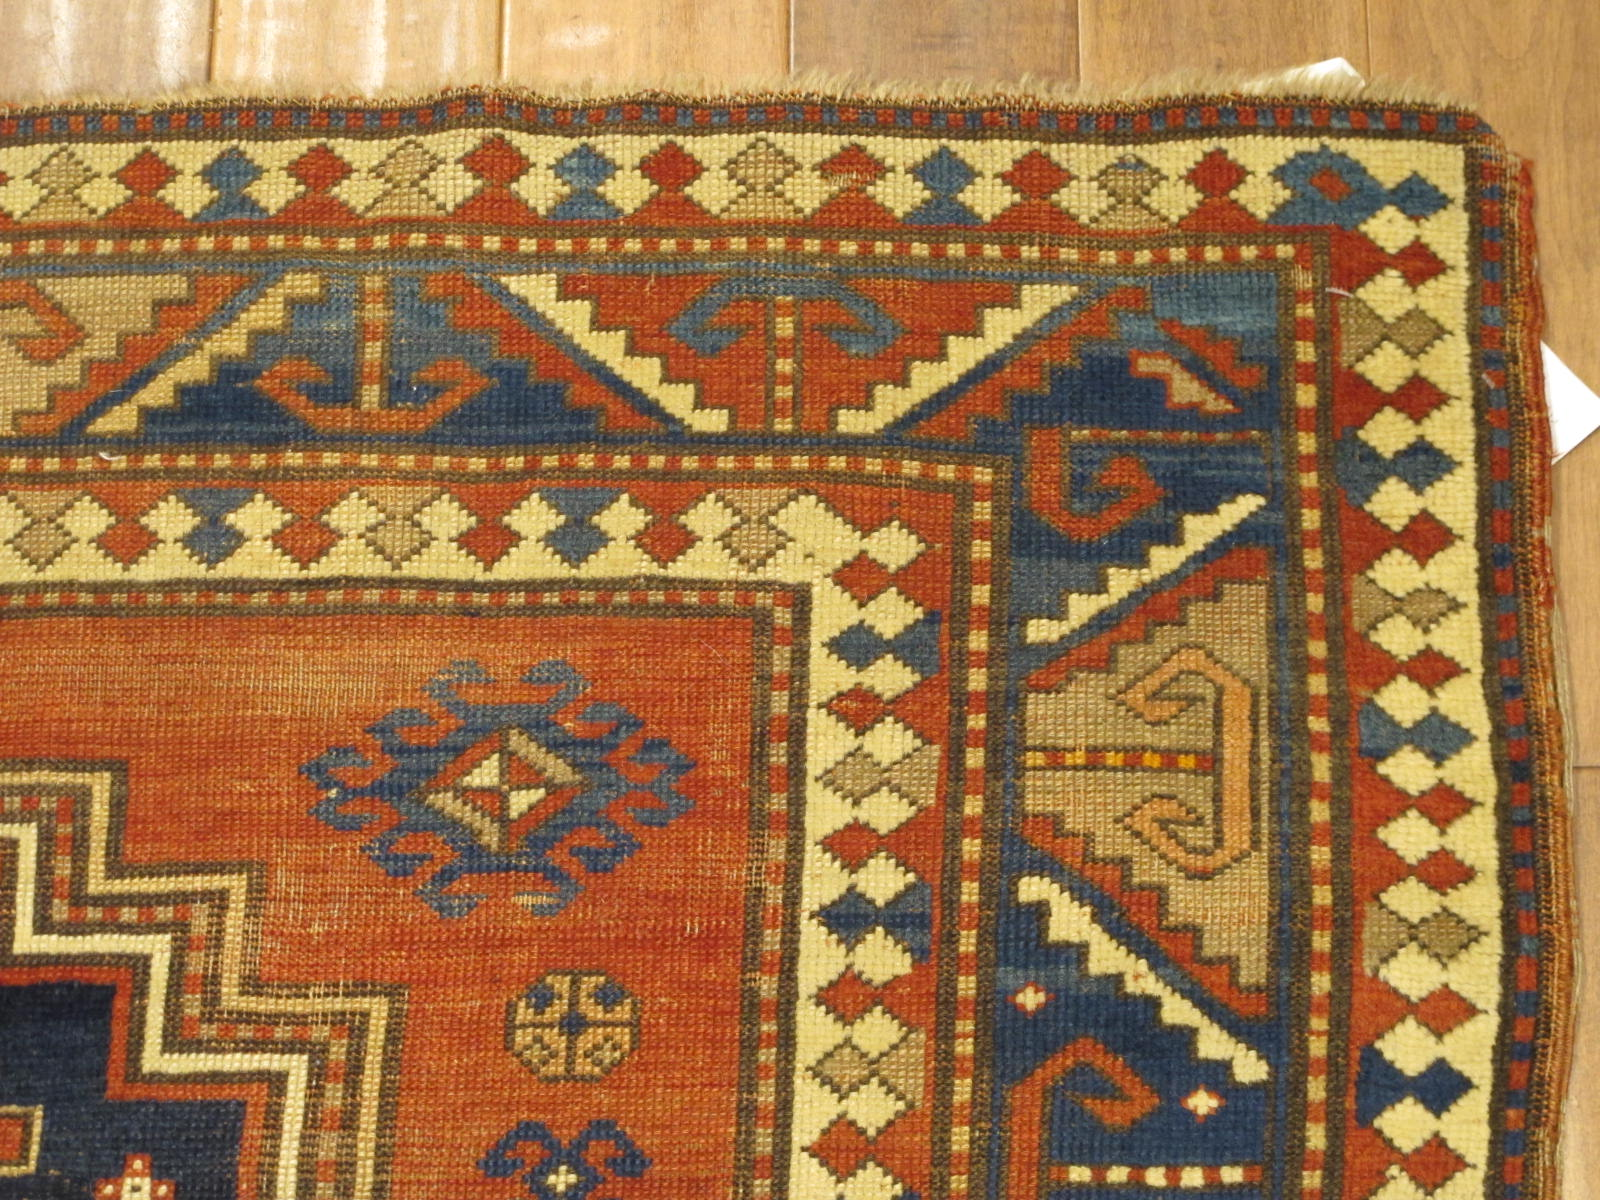 23087 antique caucasus kazak rug 5,2x7,4 (3)